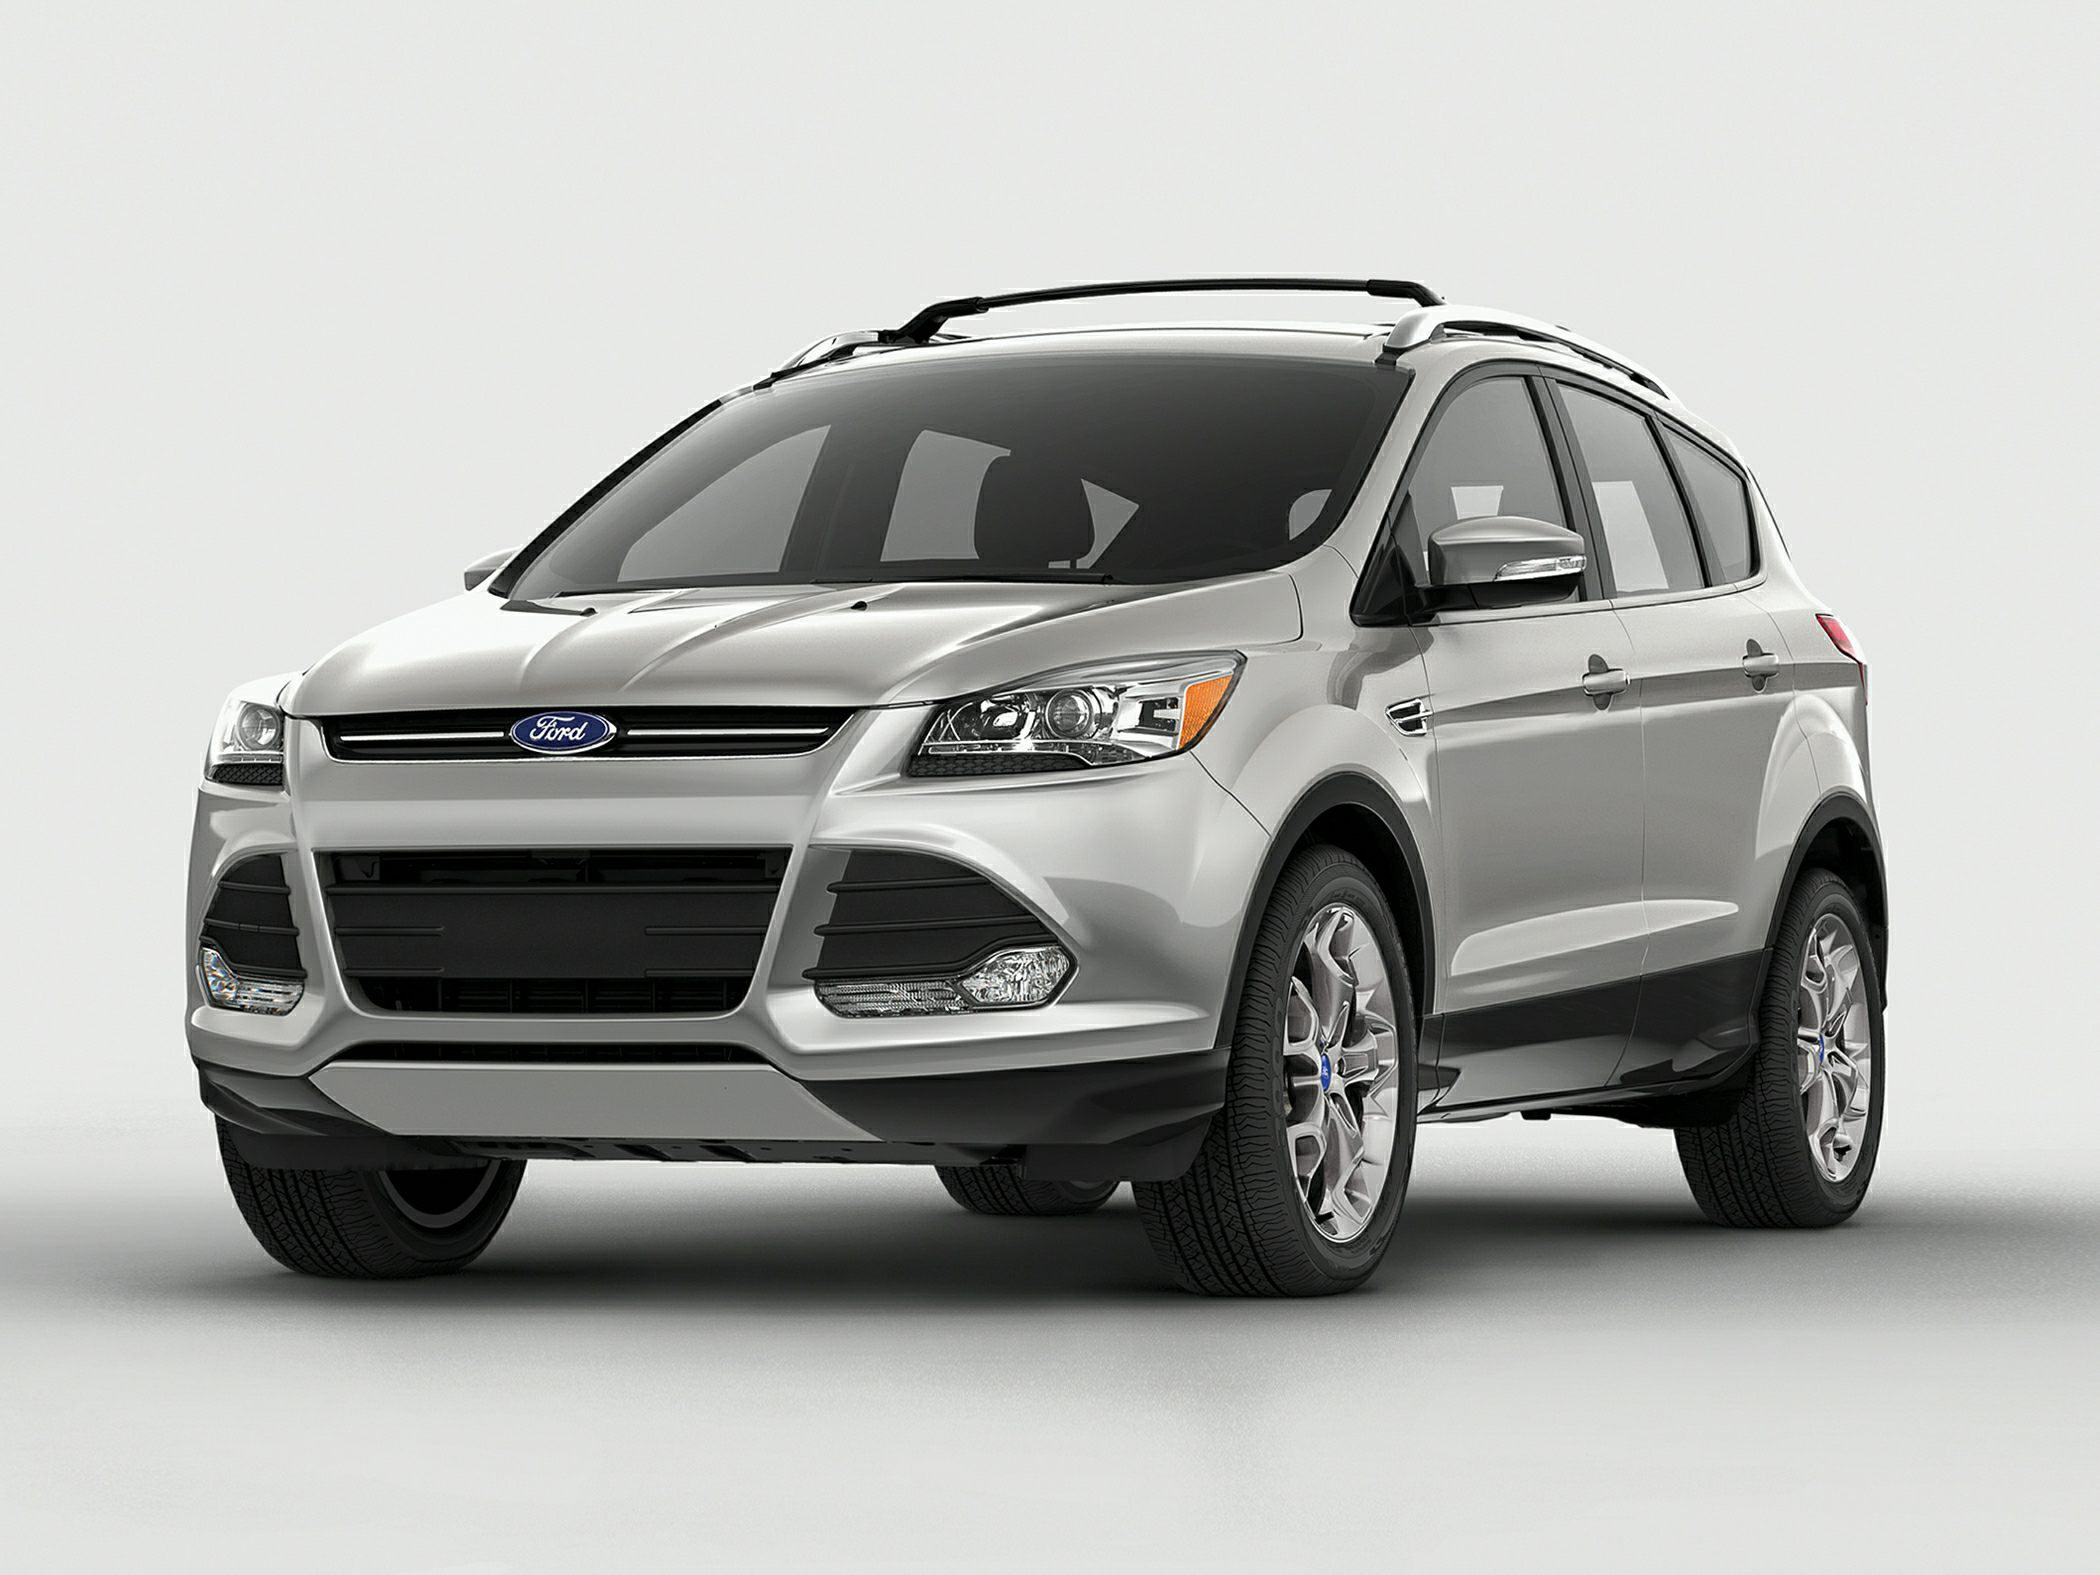 2014 Ford Escape #2